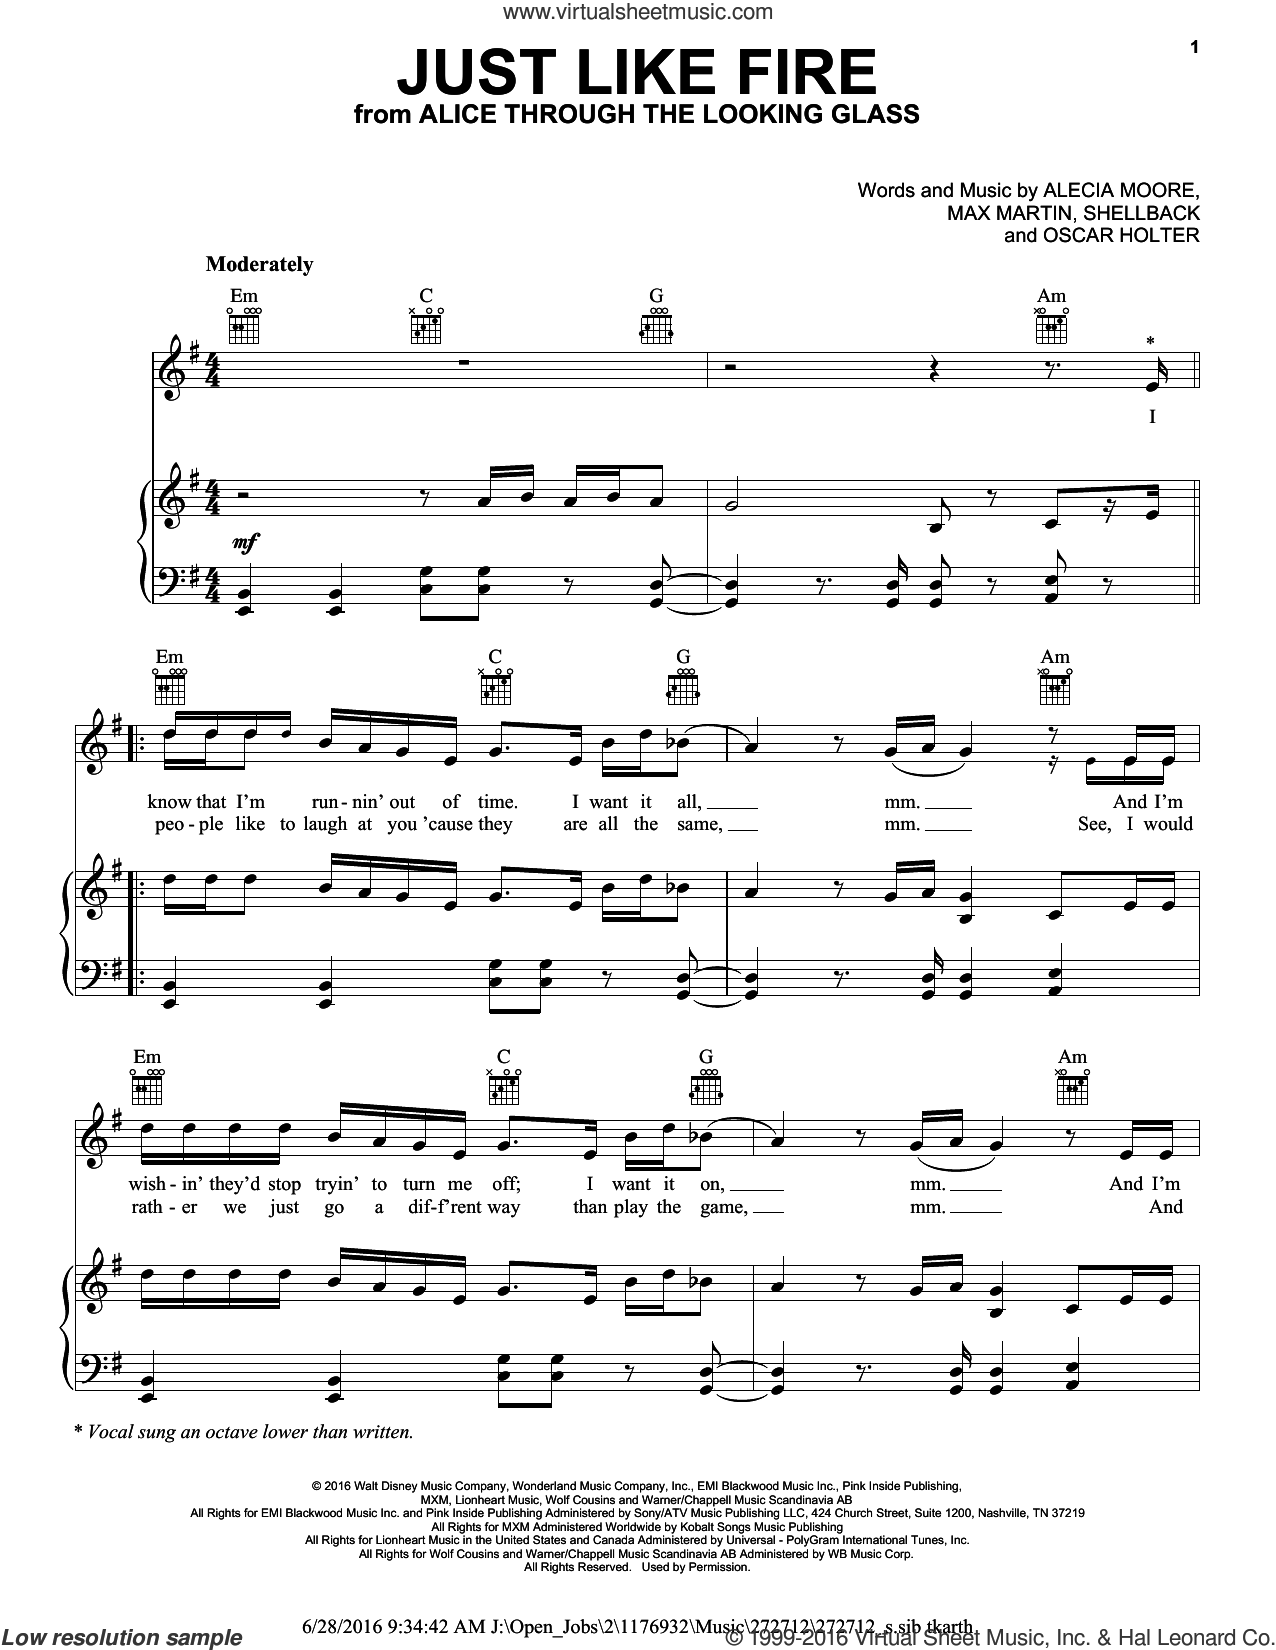 Just Like Fire sheet music for voice, piano or guitar by Max Martin, Miscellaneous, Alecia Moore, Johan Schuster, Oscar Holter and Shellback, intermediate skill level